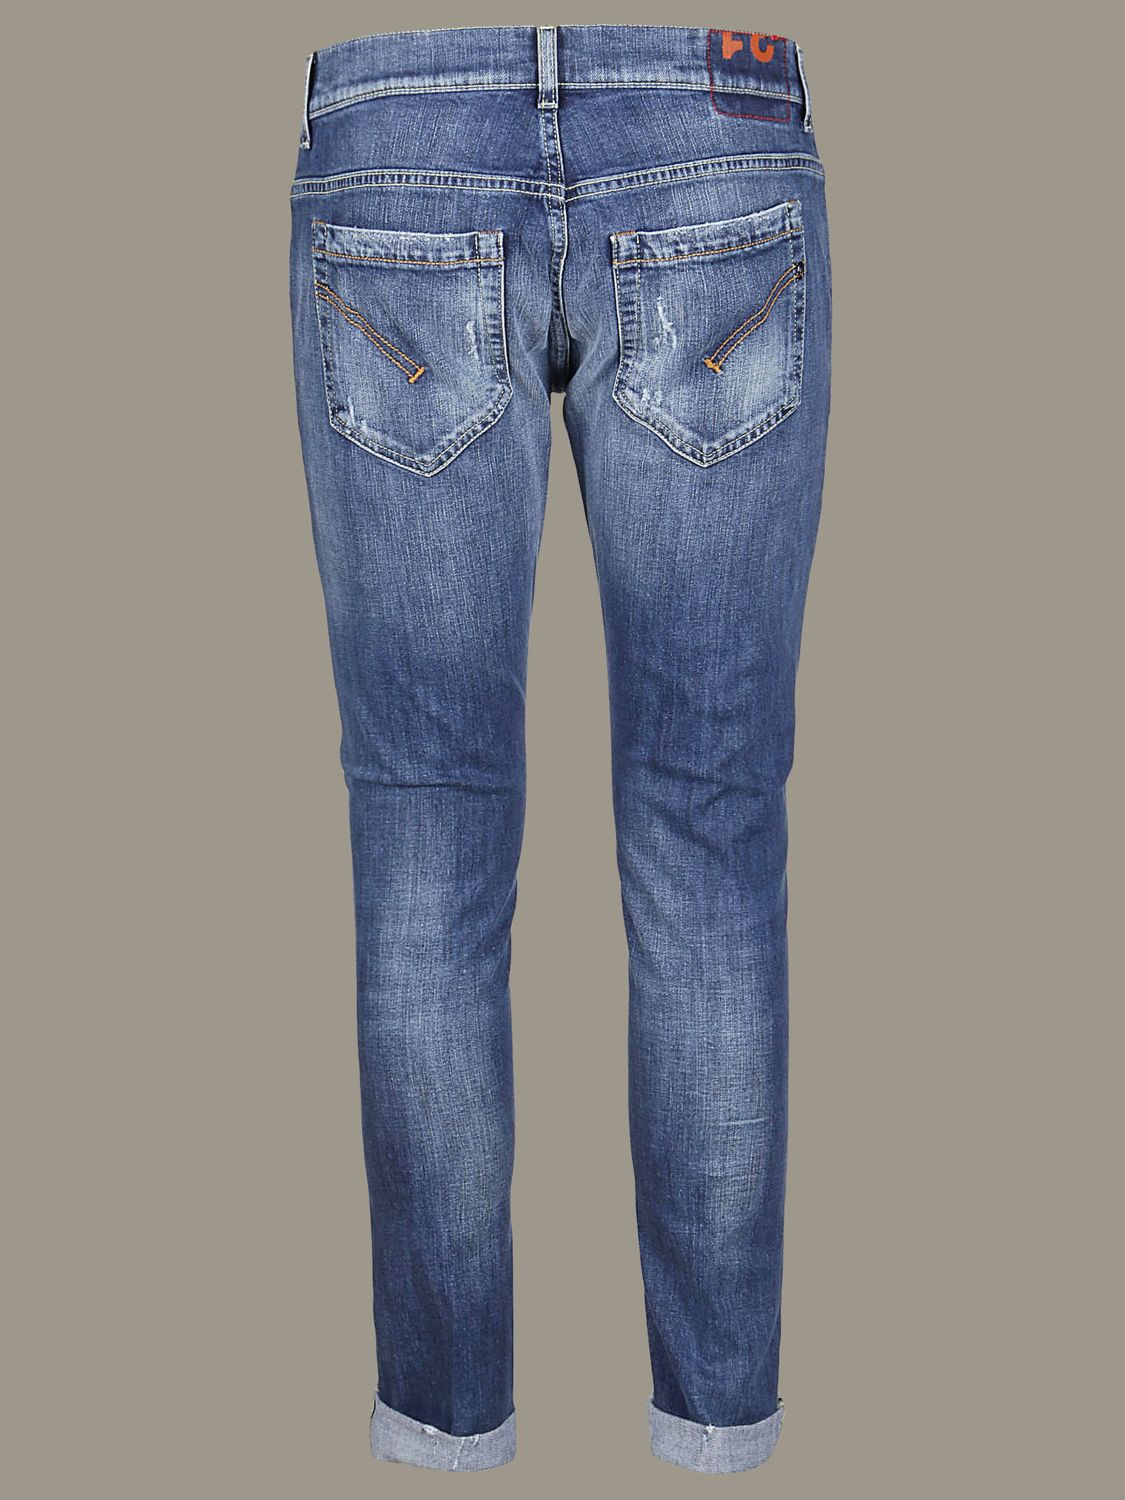 Pants Dondup: Dondup jeans in used denim with tears denim 2